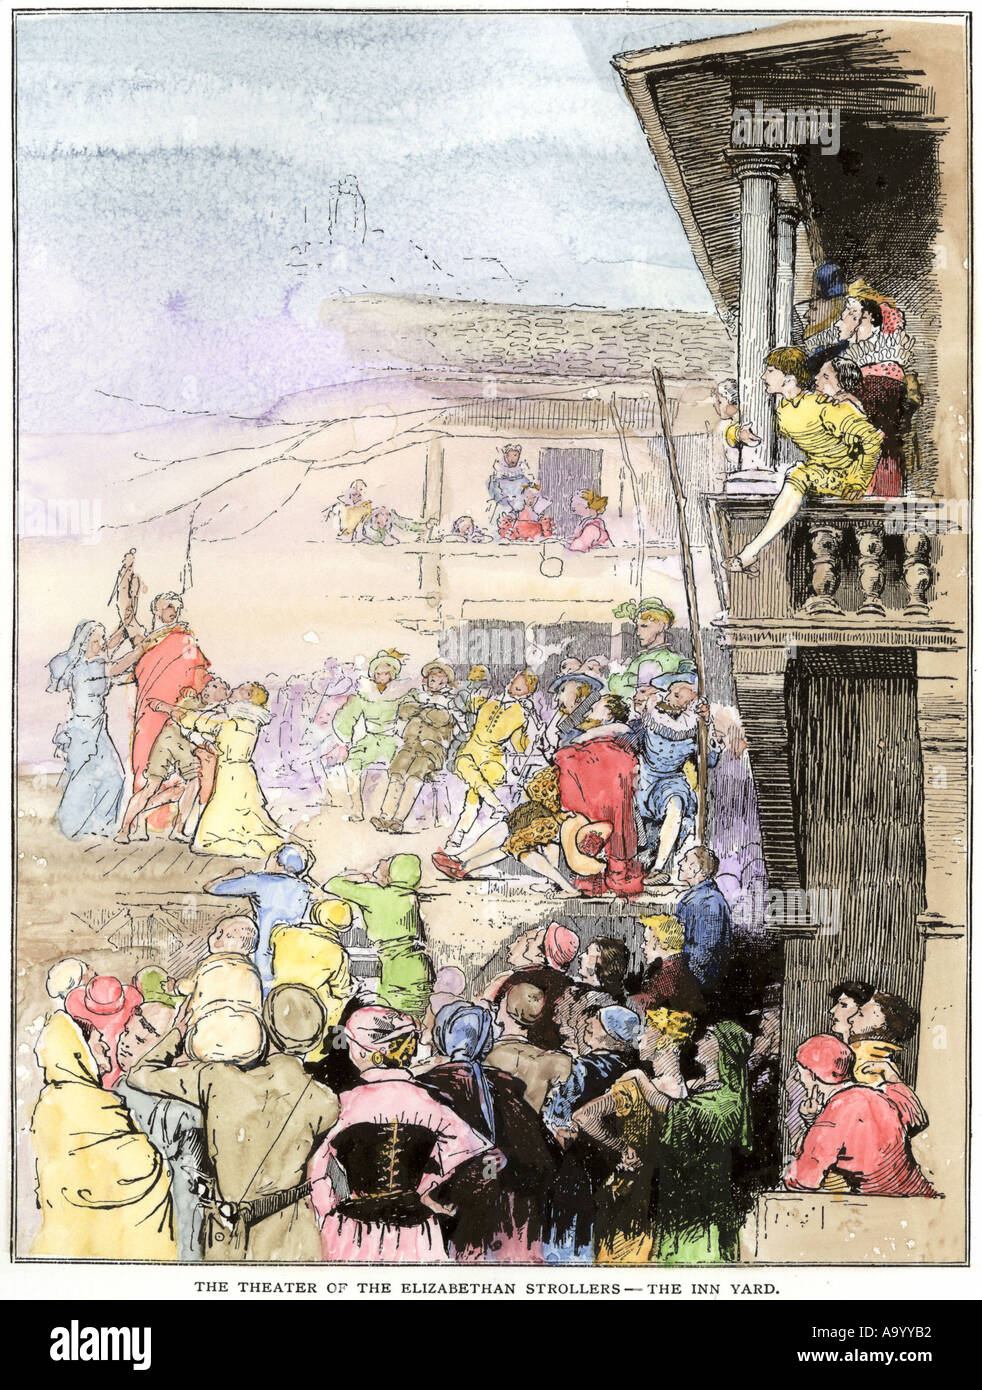 Theater of the Elizabethan Strollers in an inn yard 1500s England. Hand-colored woodcut - Stock Image